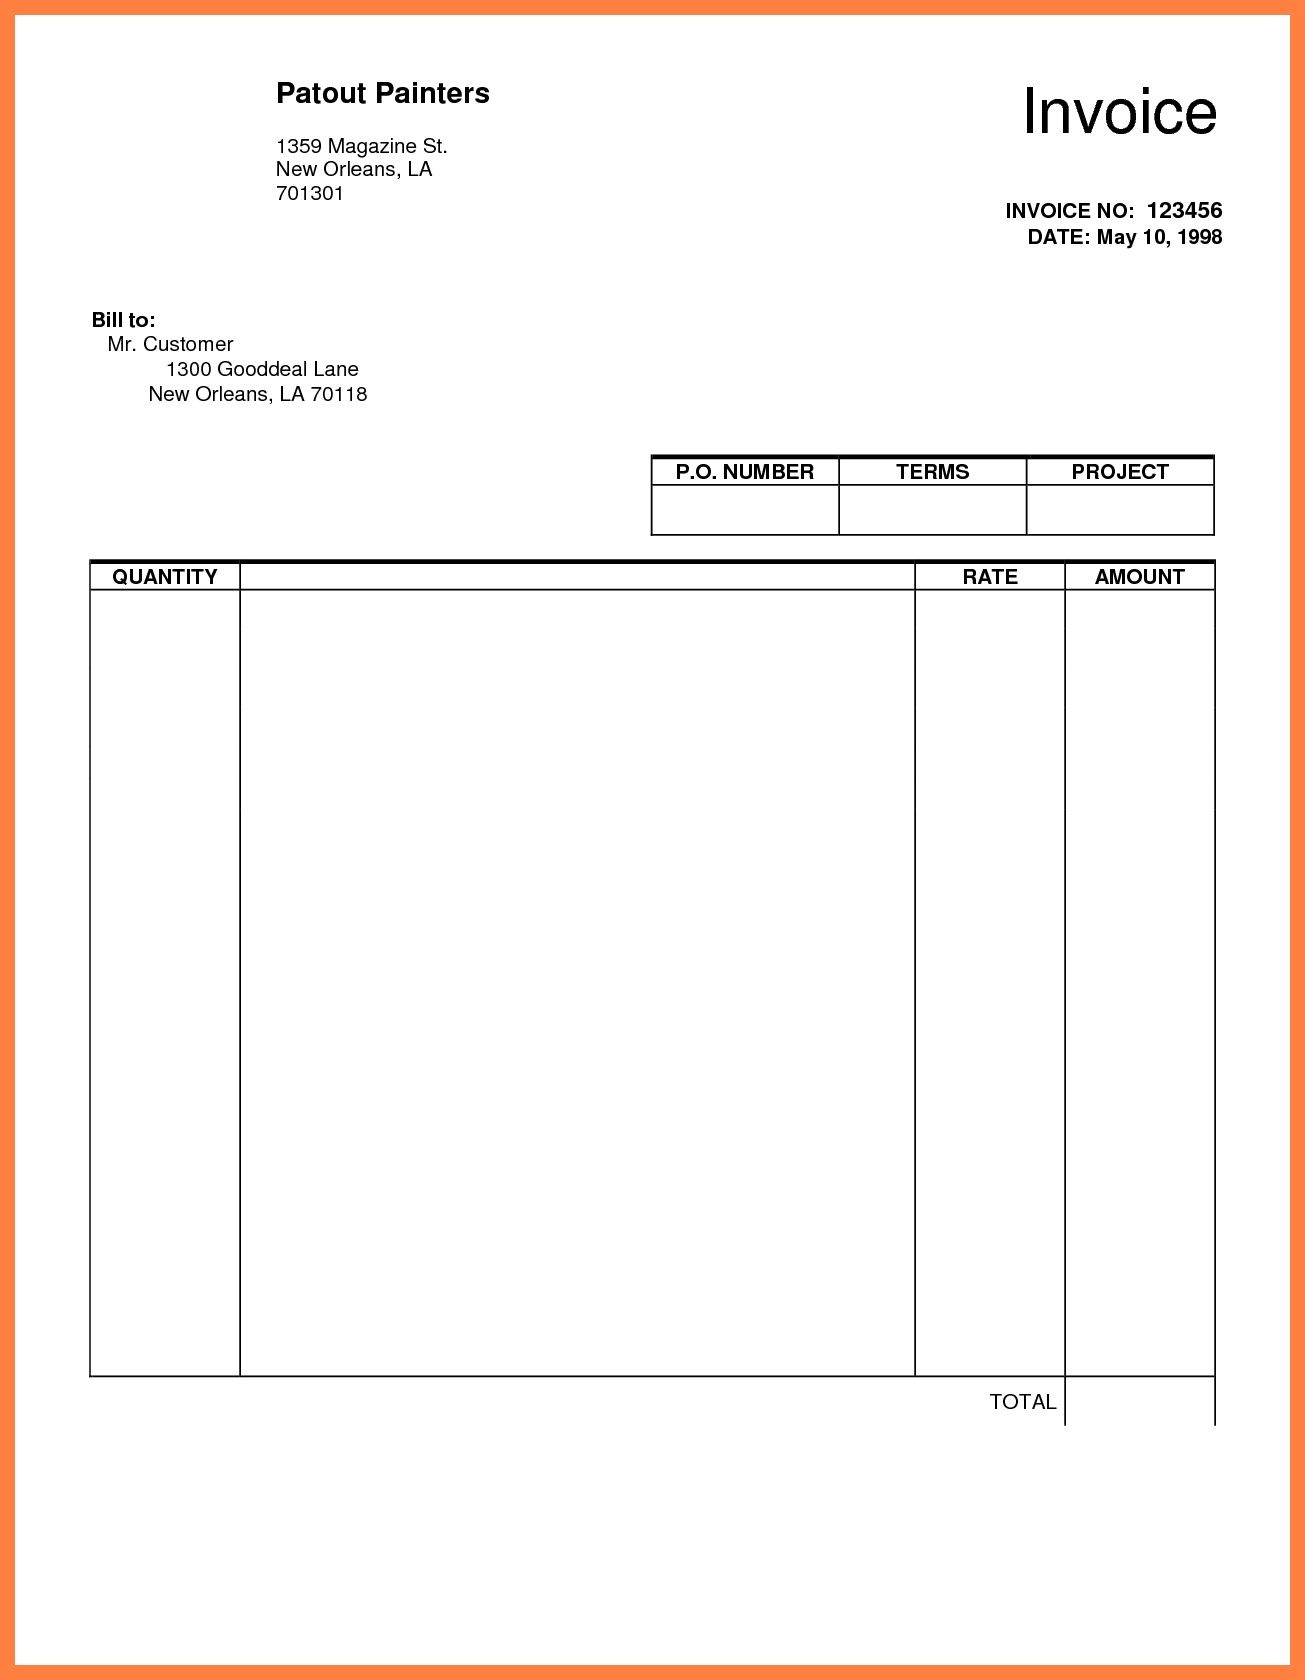 Google docs template templates word google docs templates resume google docs template templates word google docs templates resume make an invoice in google docs pronofoot35fo Gallery